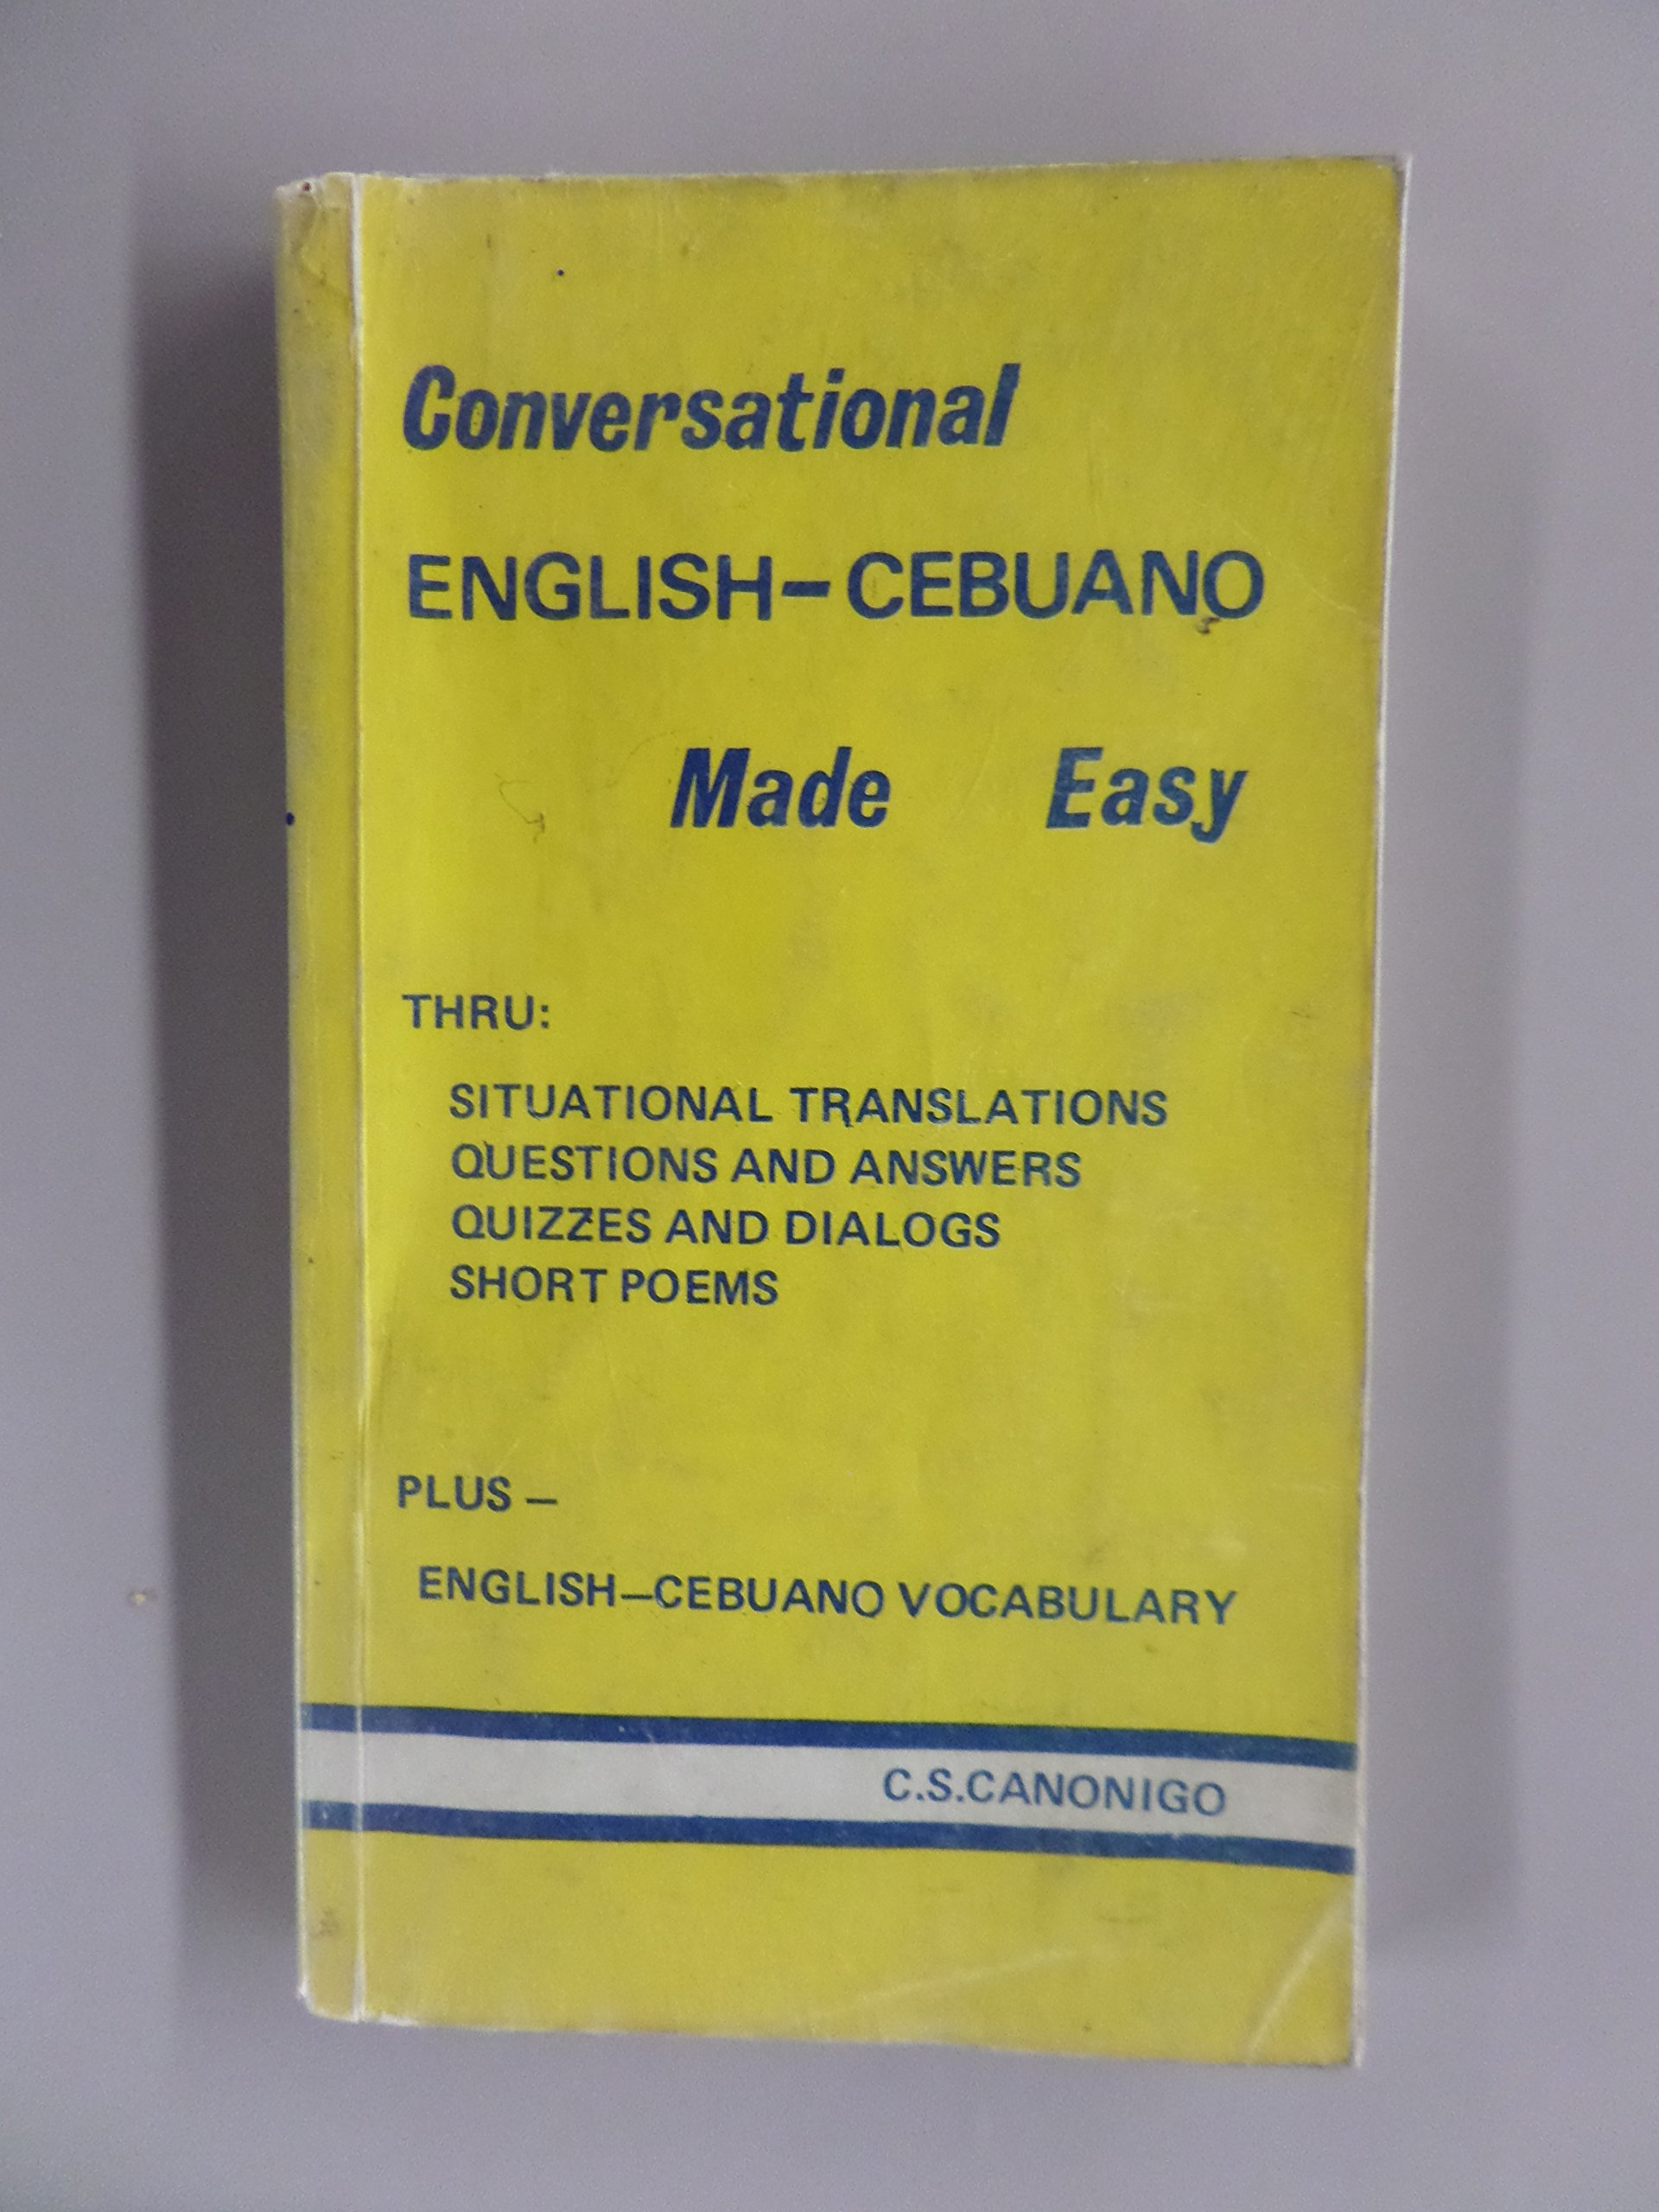 conversational english cebuano made easy thru situational conversational english cebuano made easy thru situational translations questions and answers quizzes and dialogs short poems plus english cebuano